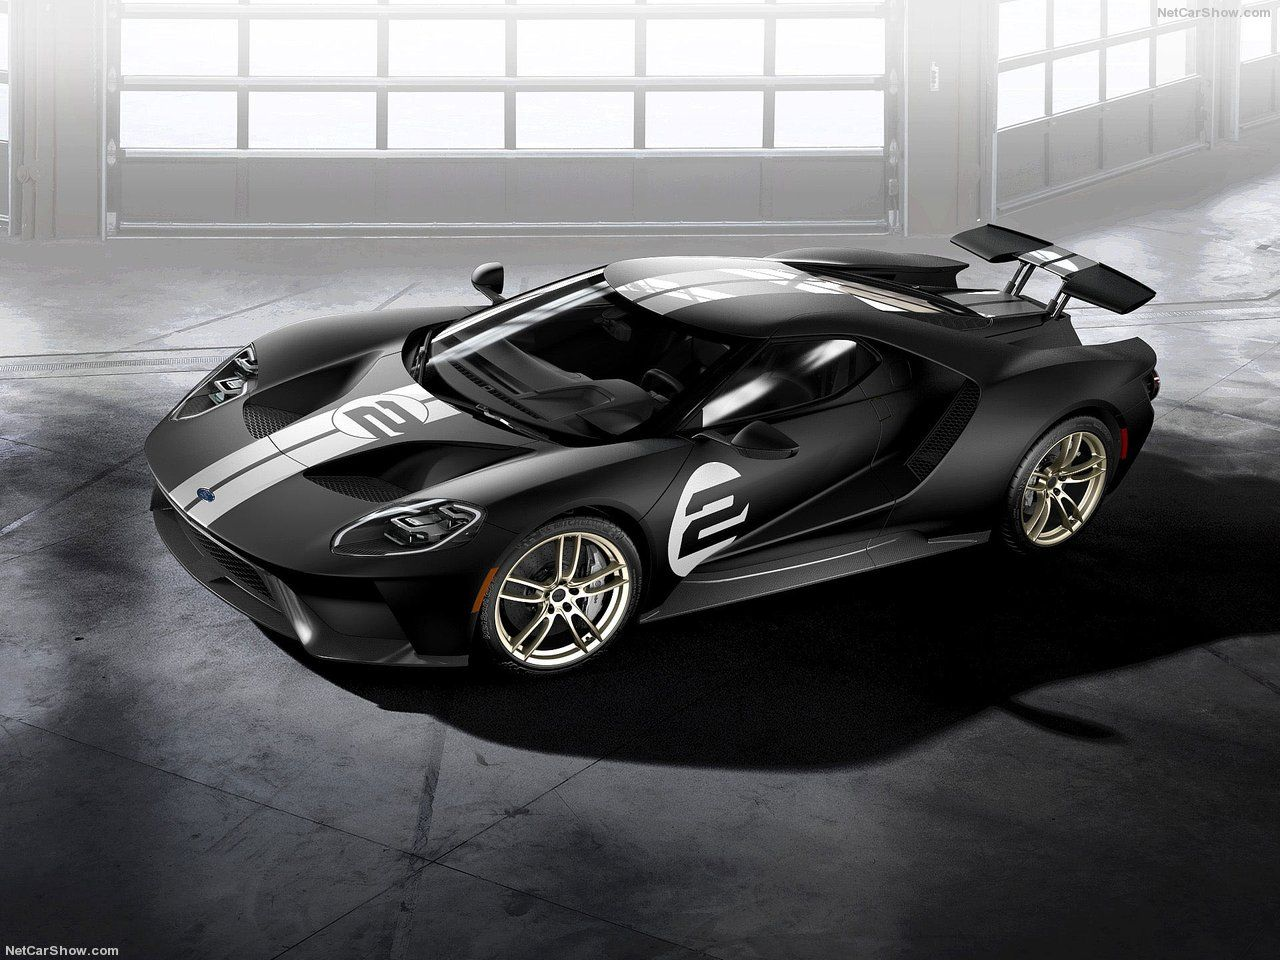 Ford Presents Ford Gt  Heritage Edition Gallery Of  High Resolution Images And Press Release Information